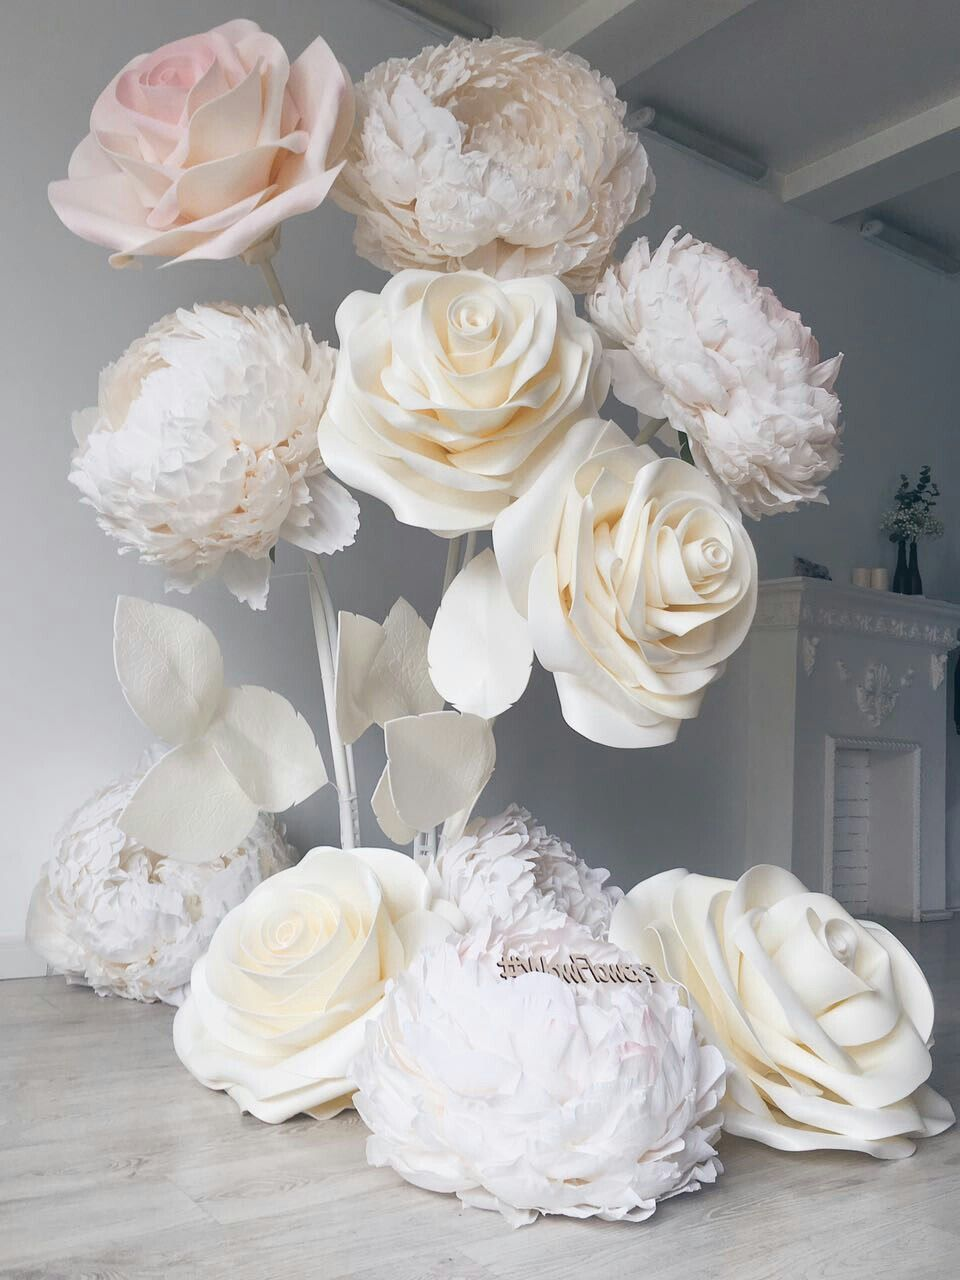 Wedding decorations paper flowers  paperflowers My fav to create  modify  Pinterest  Flowers Paper